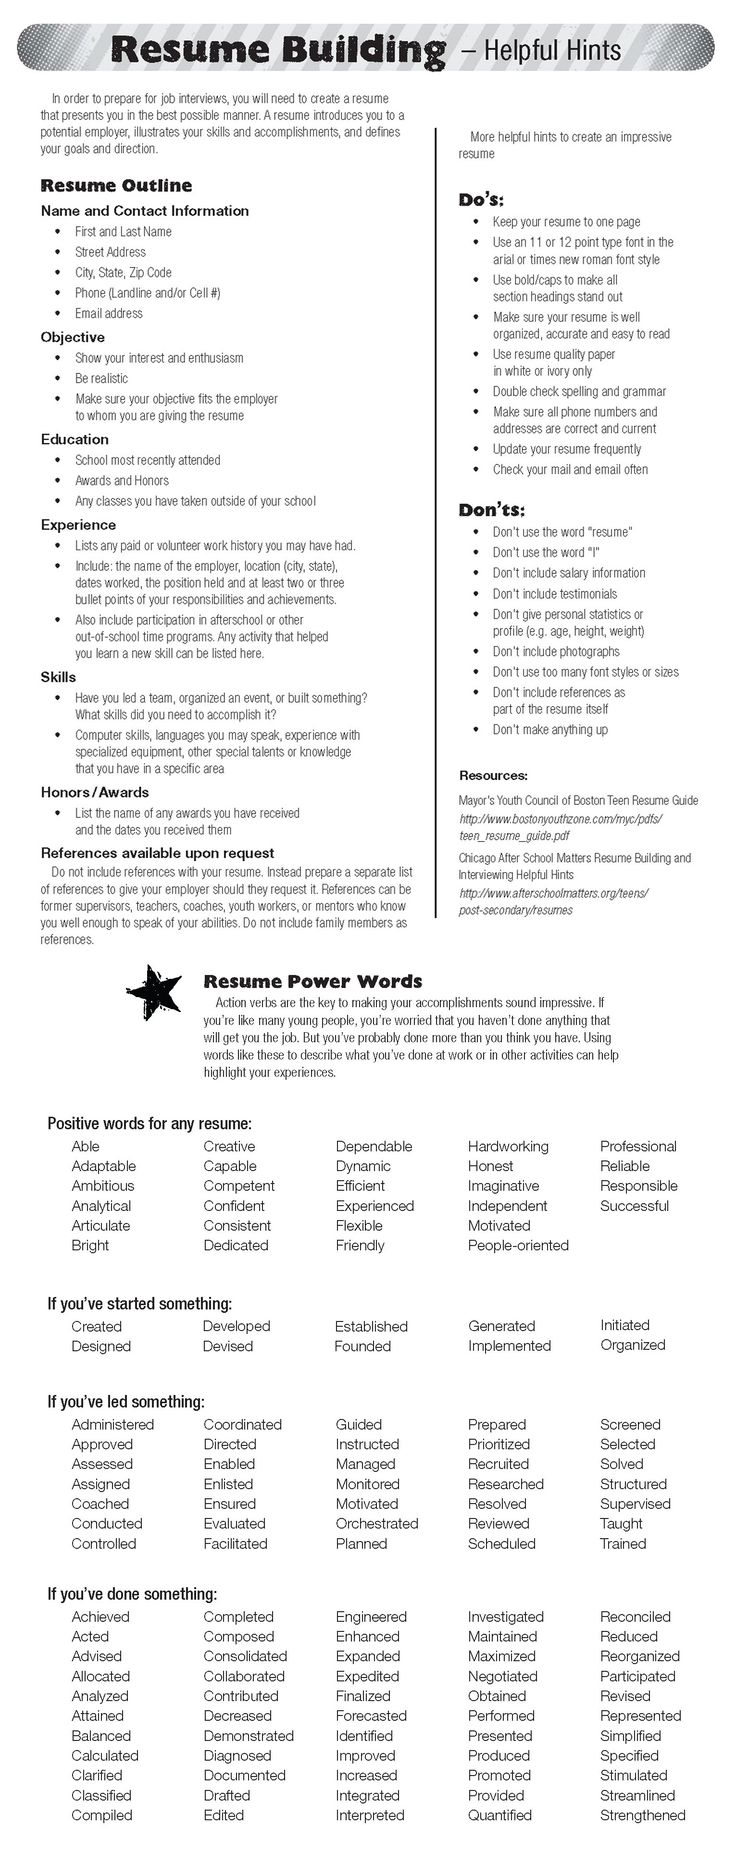 Resume Power Phrases | Template